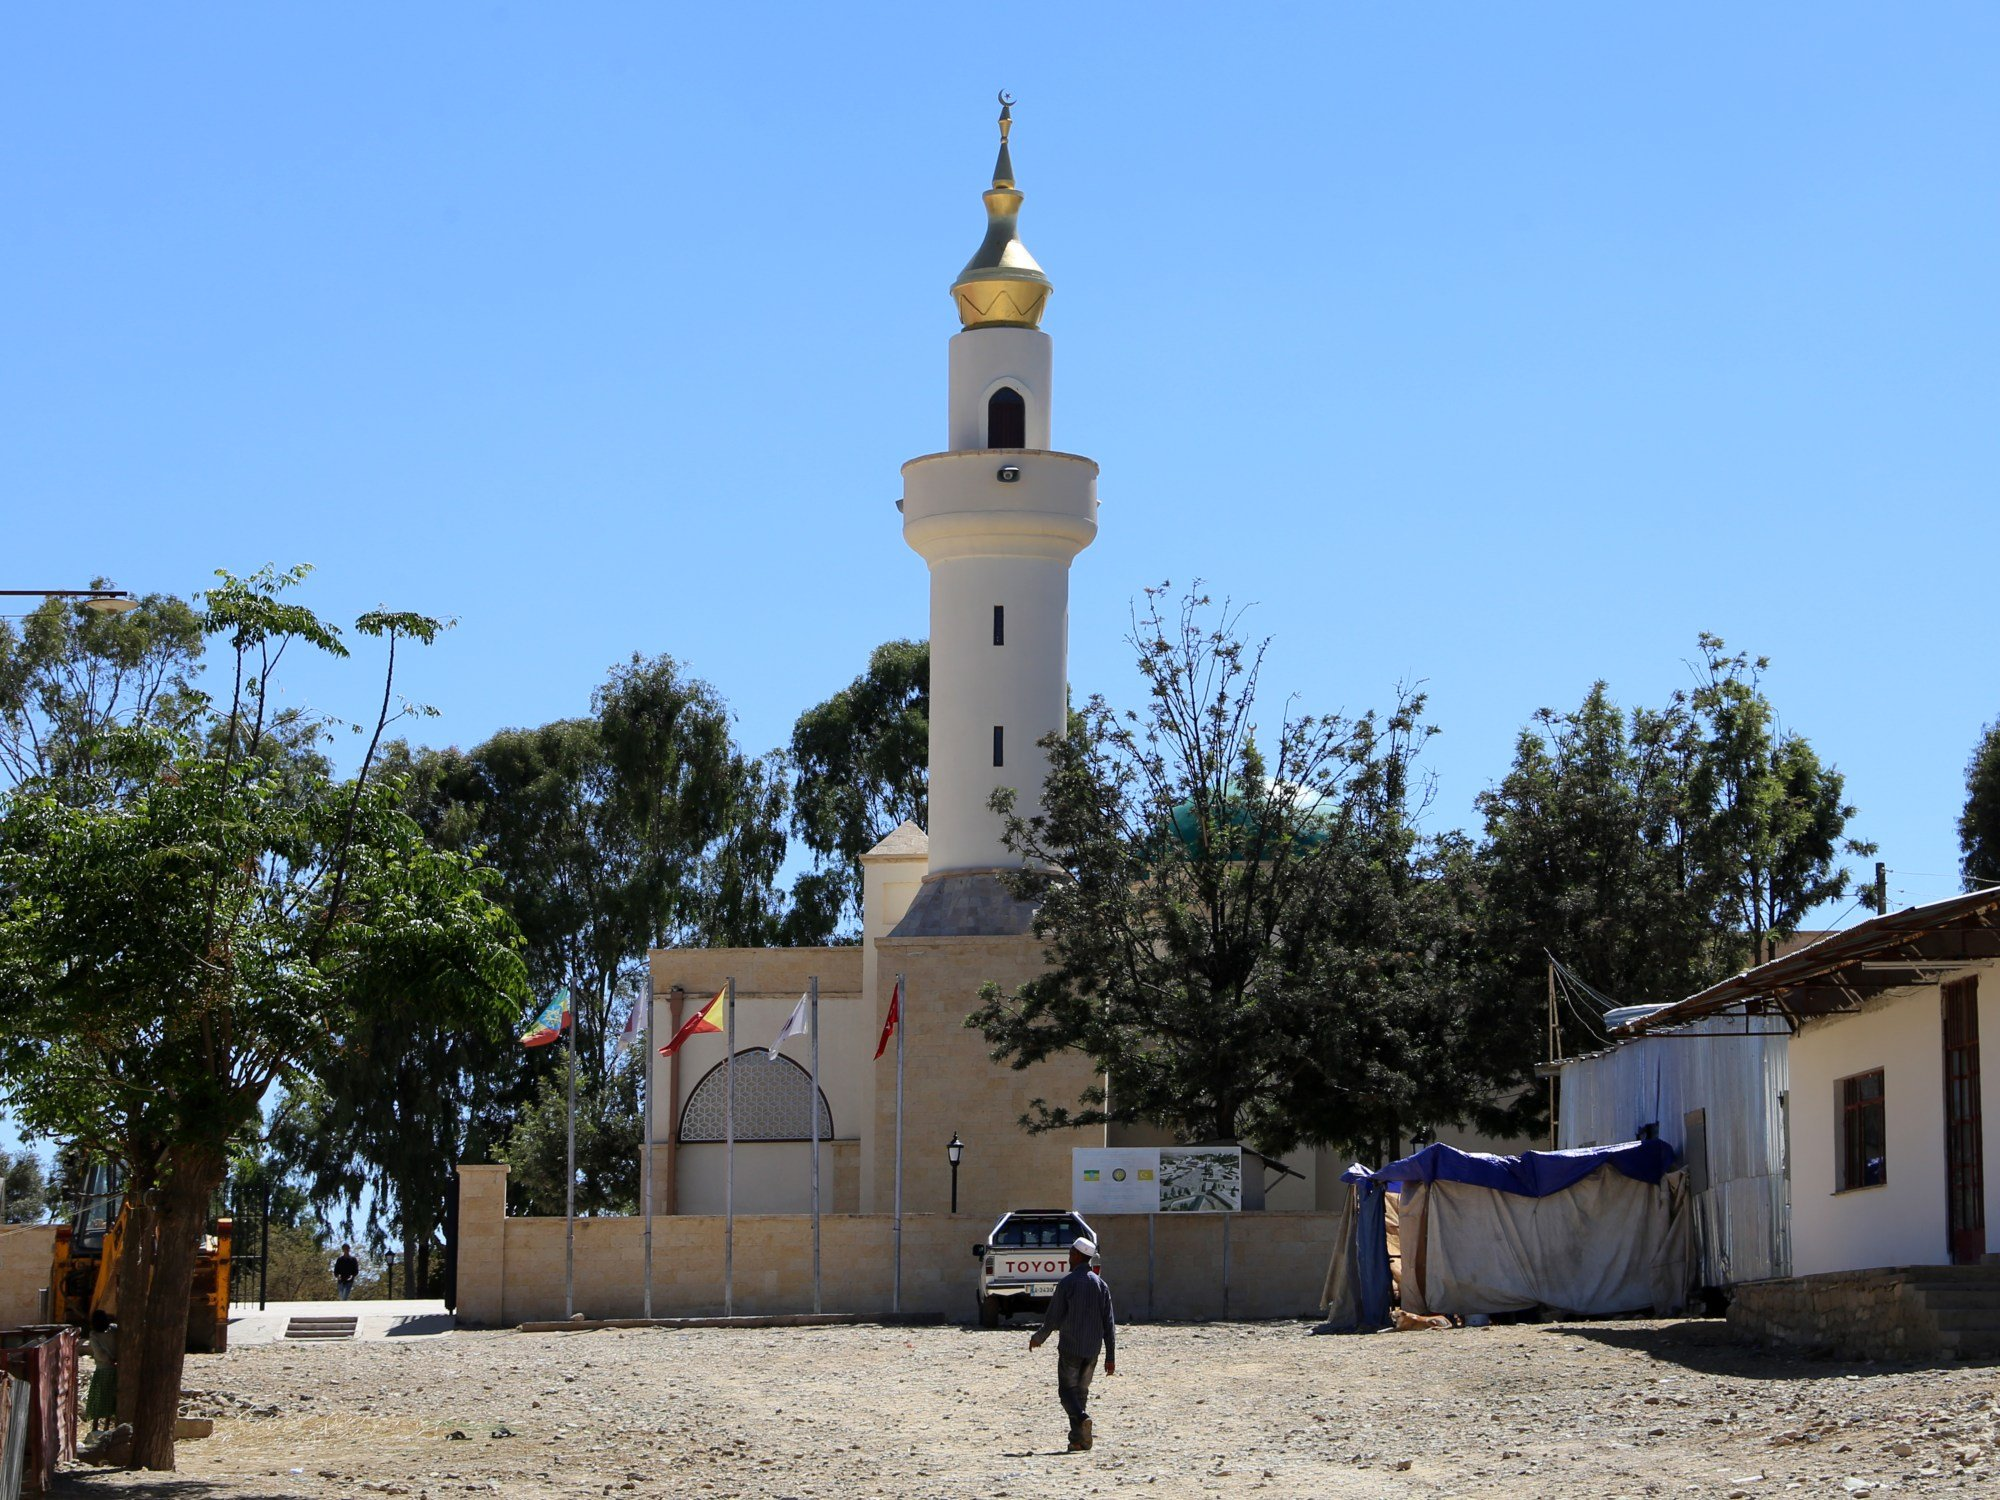 The mosque, pictured here in 2018, was first built in the 7th century (Wikicommons/Sailko)